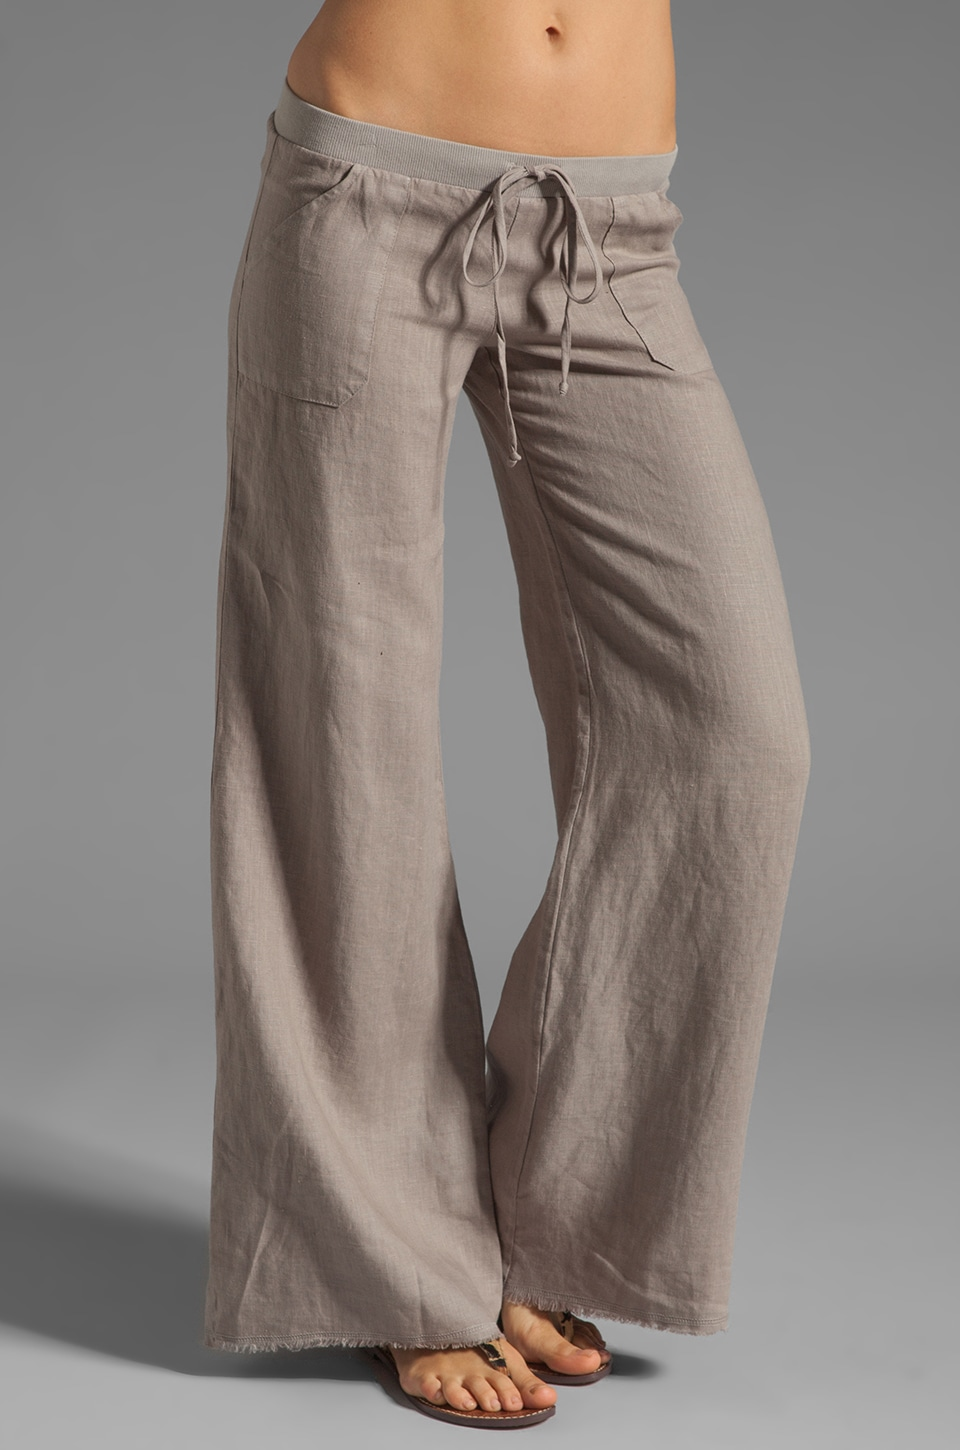 krisa Pocket Pant in Ash